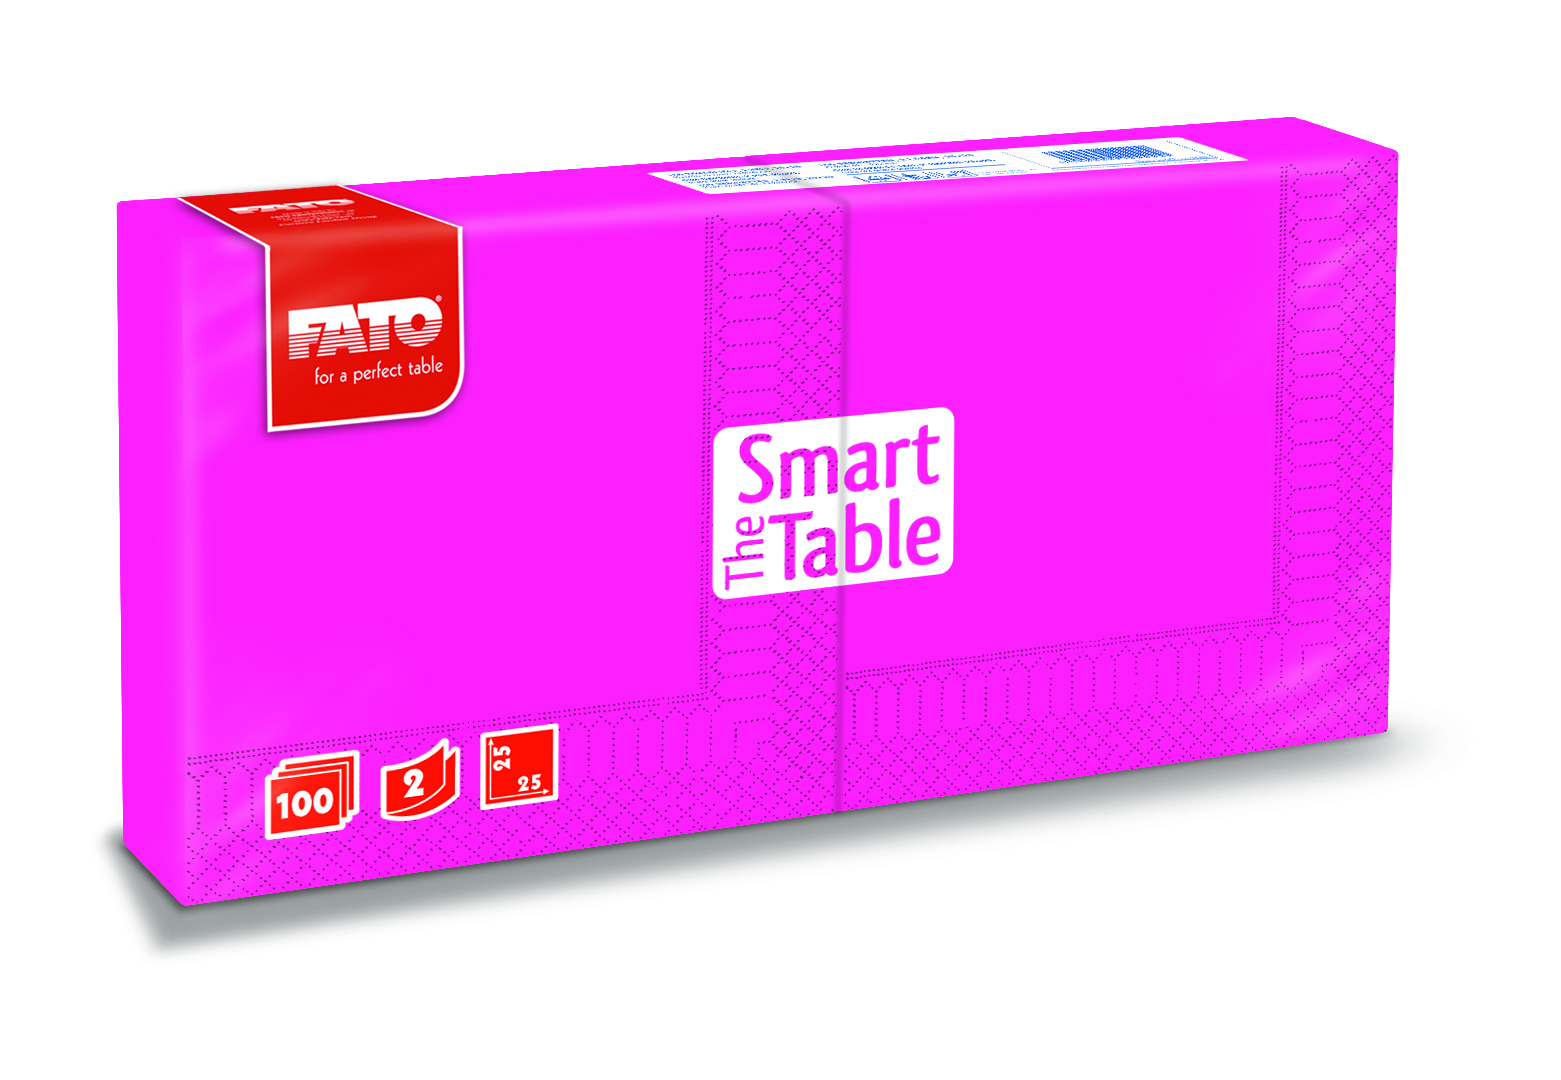 Ubrousky The Smart Table, 25x25cm, 2vr., Fuchsia - 3800 ks